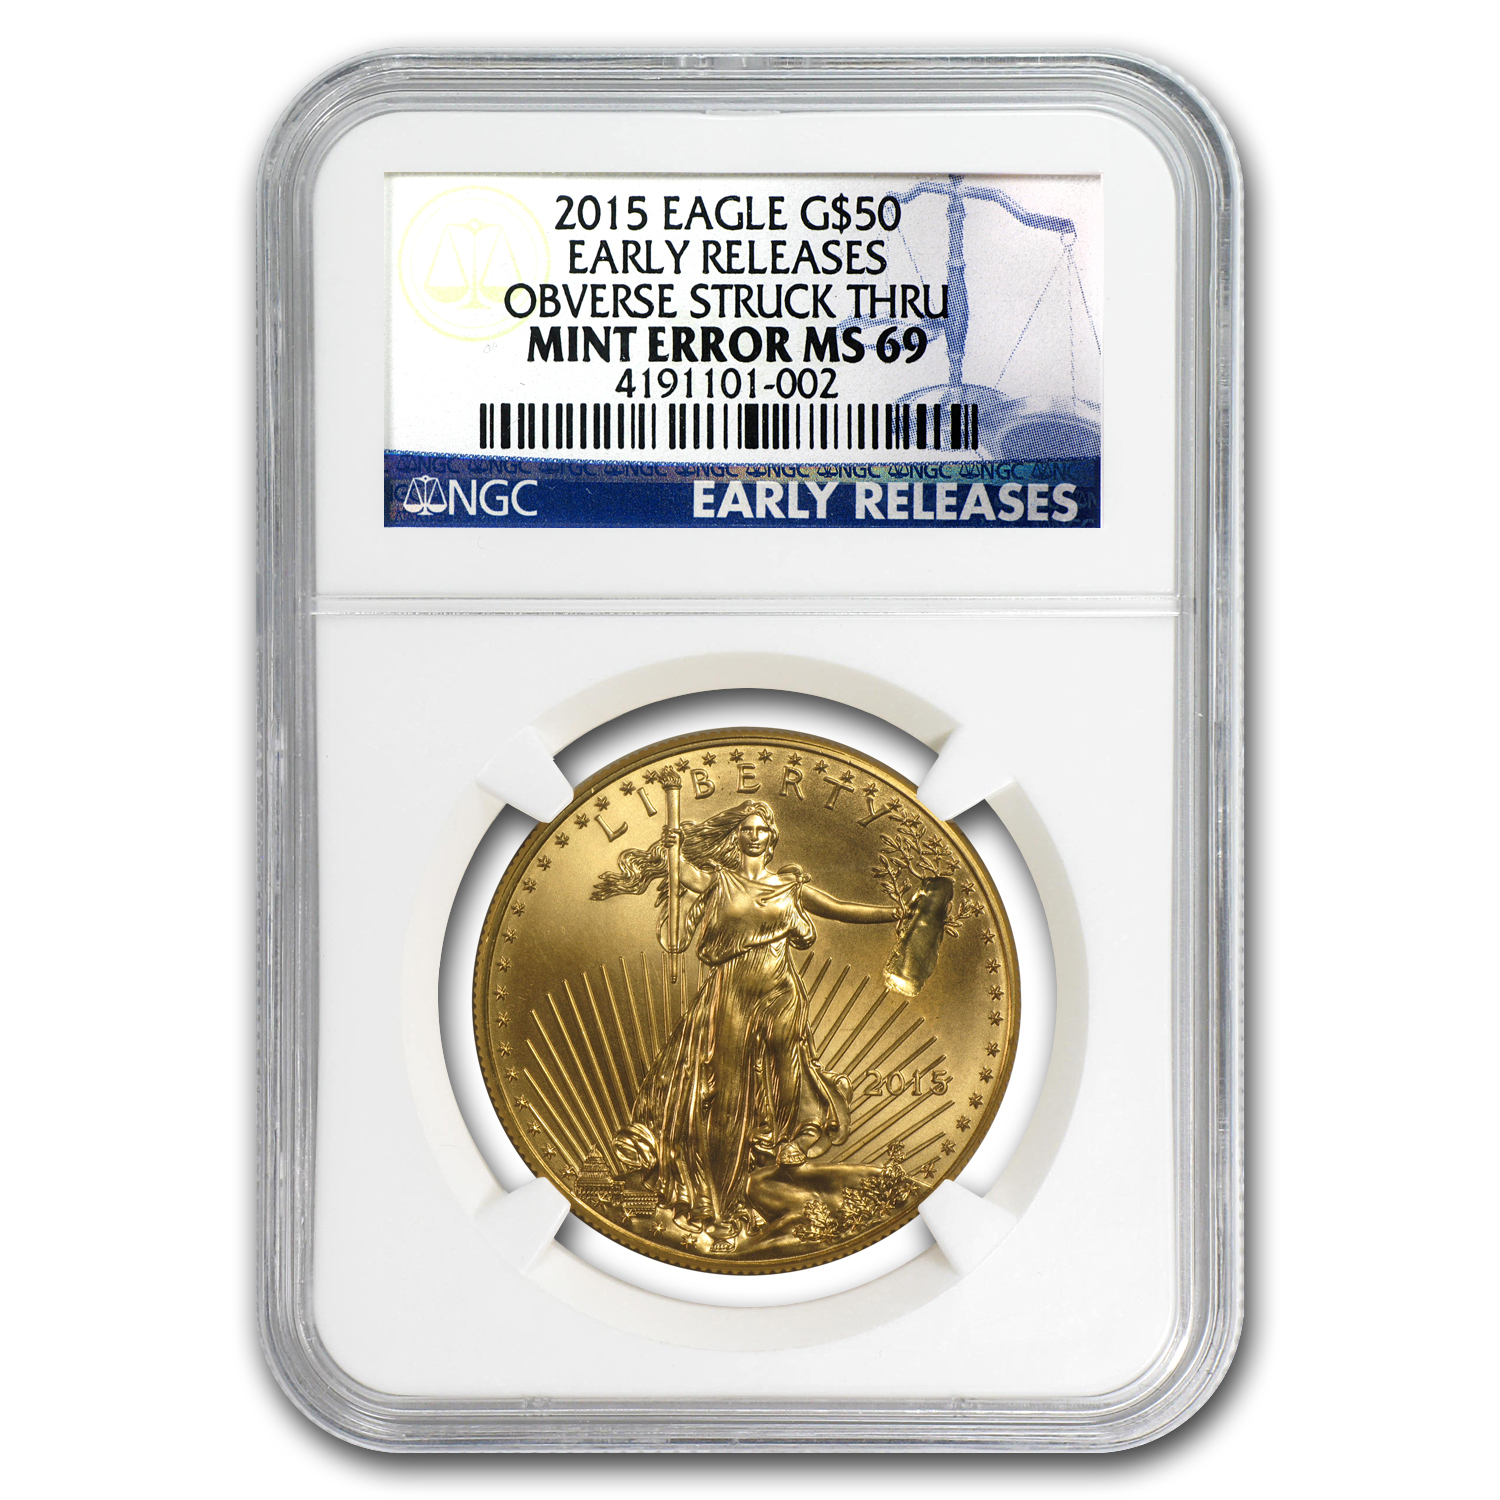 2015 1 oz Gold Eagle Mint Error NGC MS-69 (Early Releases)